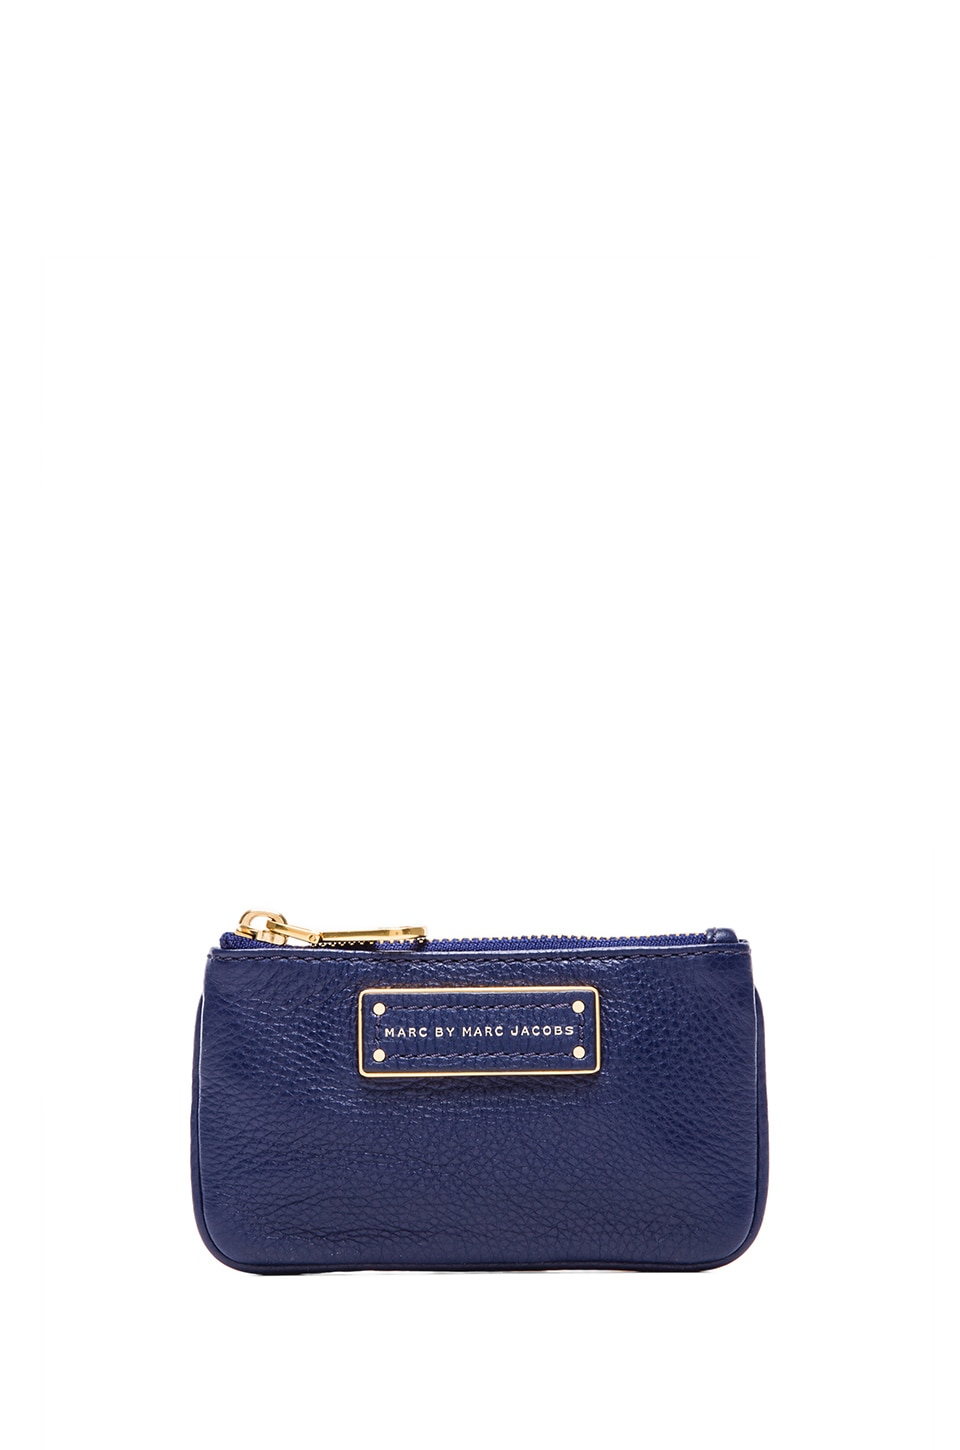 Marc by Marc Jacobs Too Hot to Handle Key Pouch in Deep Ultraviolet